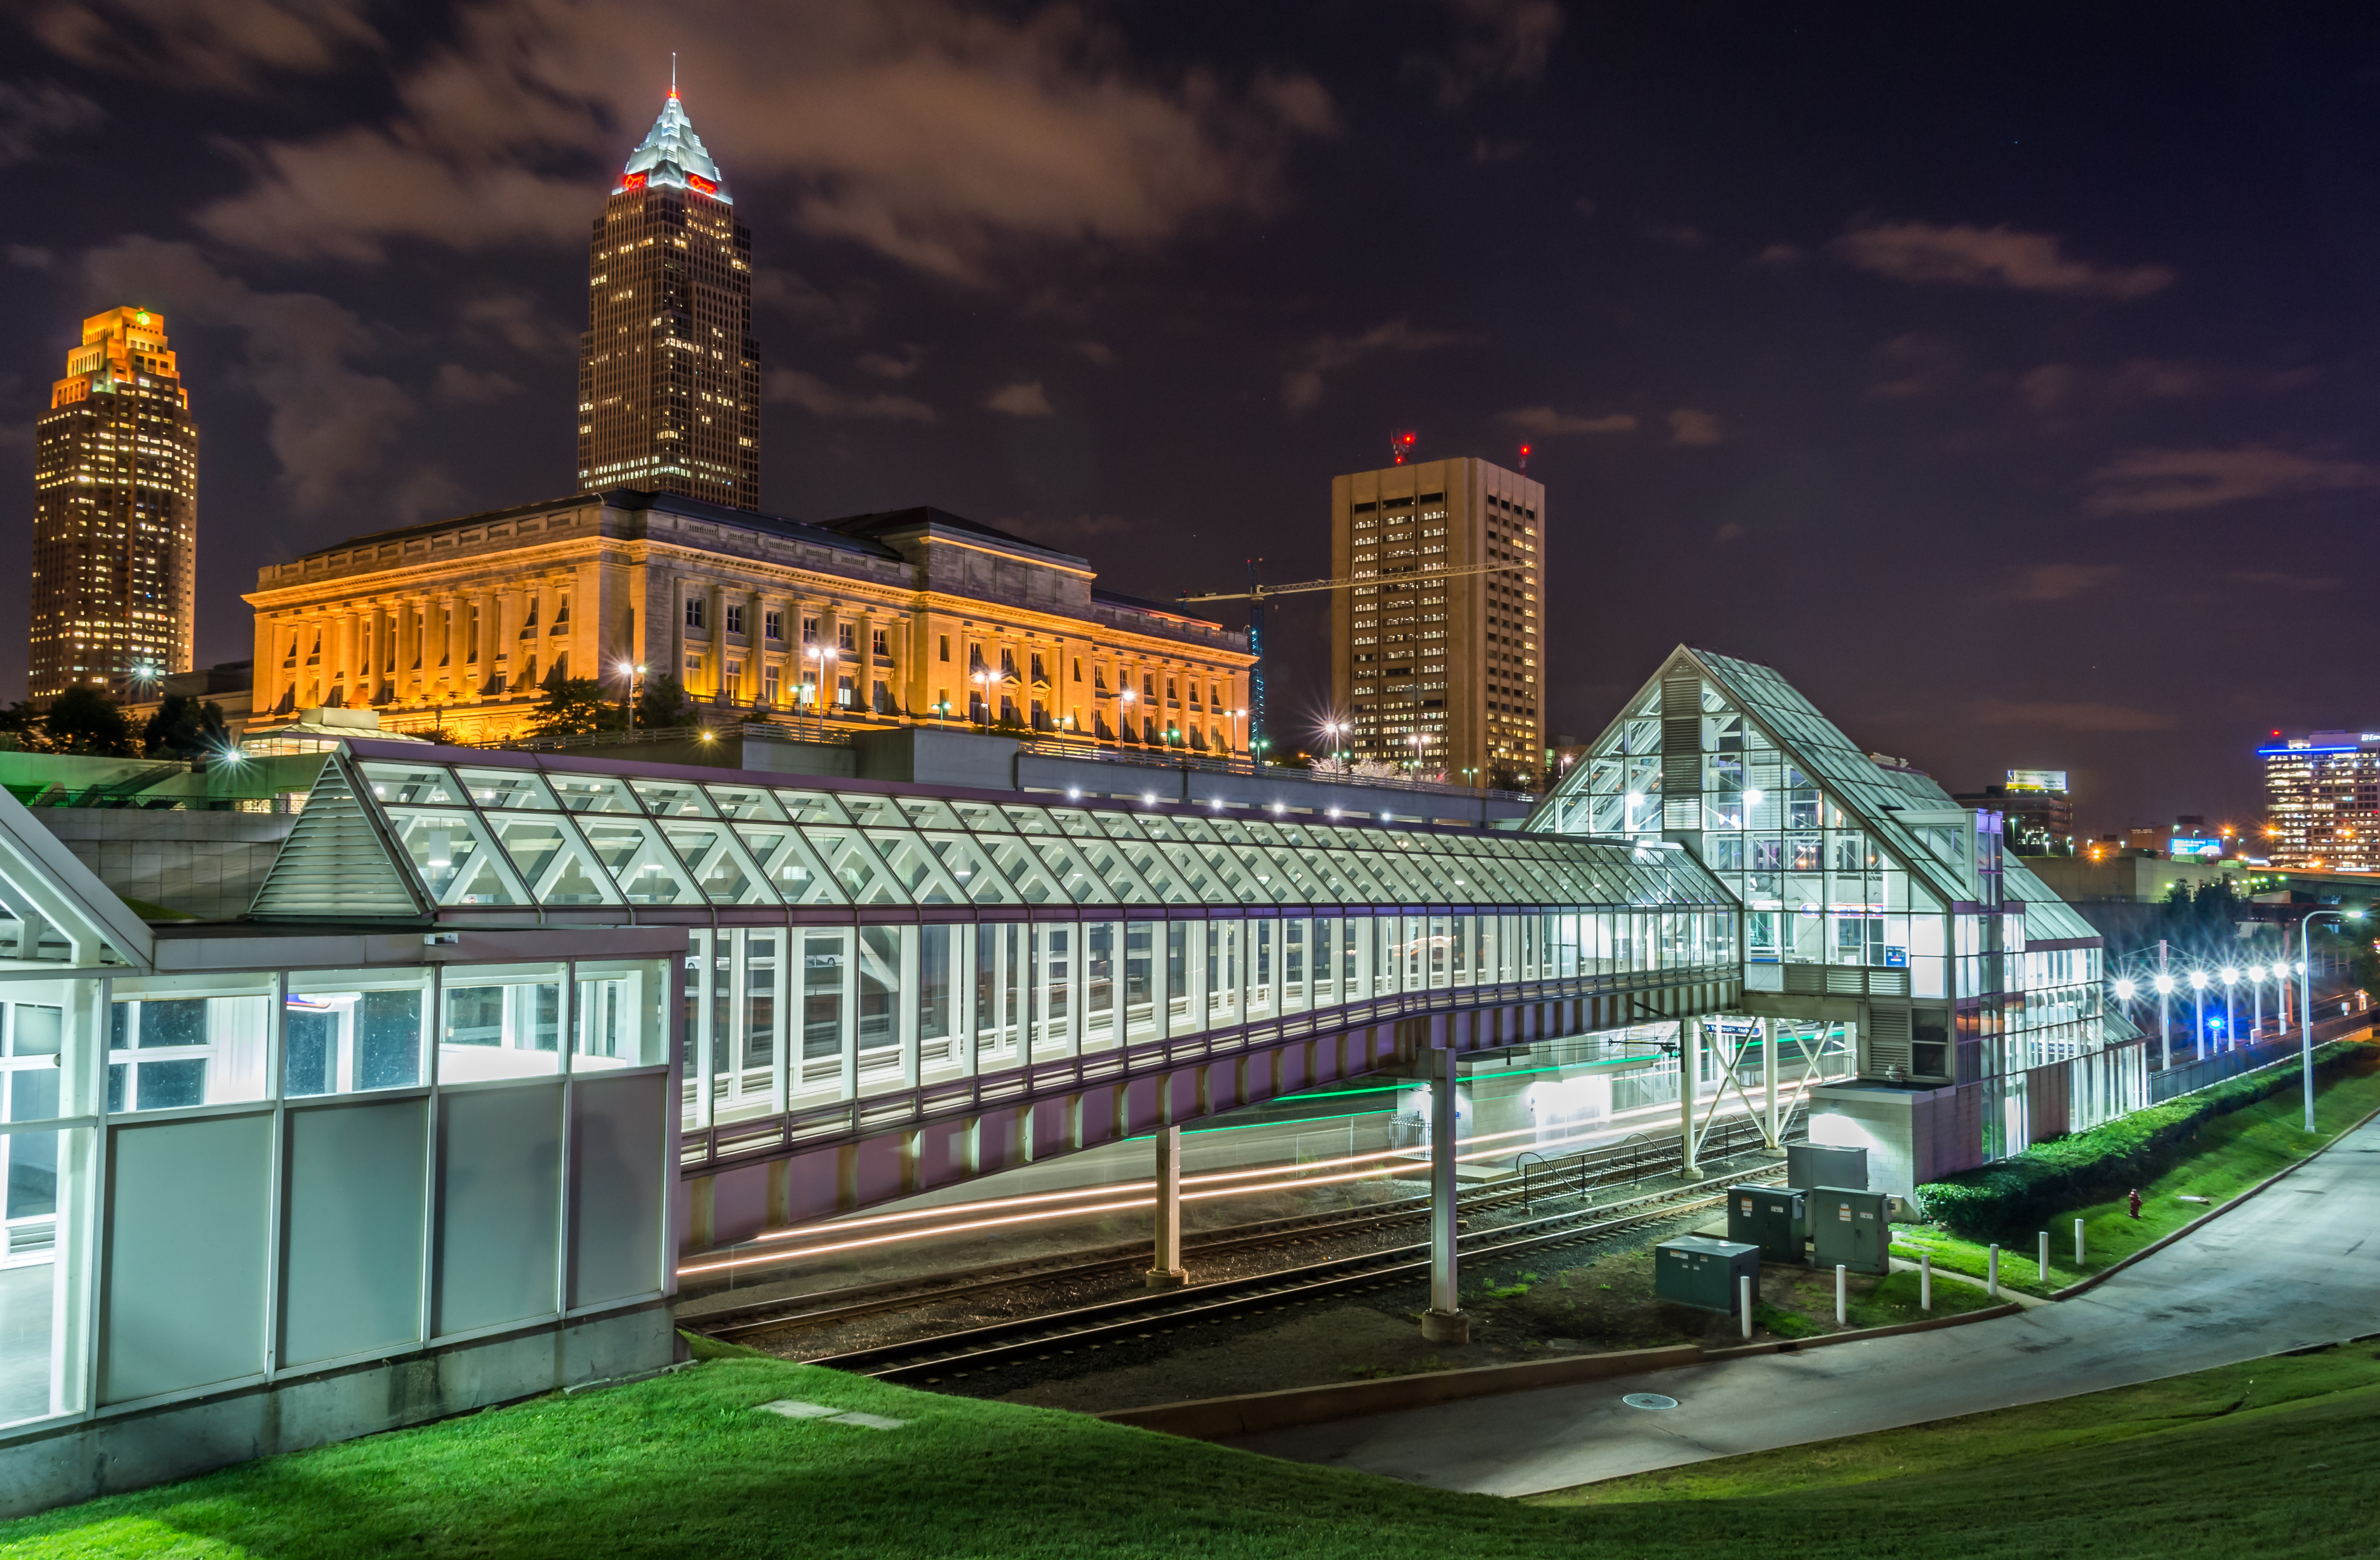 North Shore Station in Downtown Cleveland.